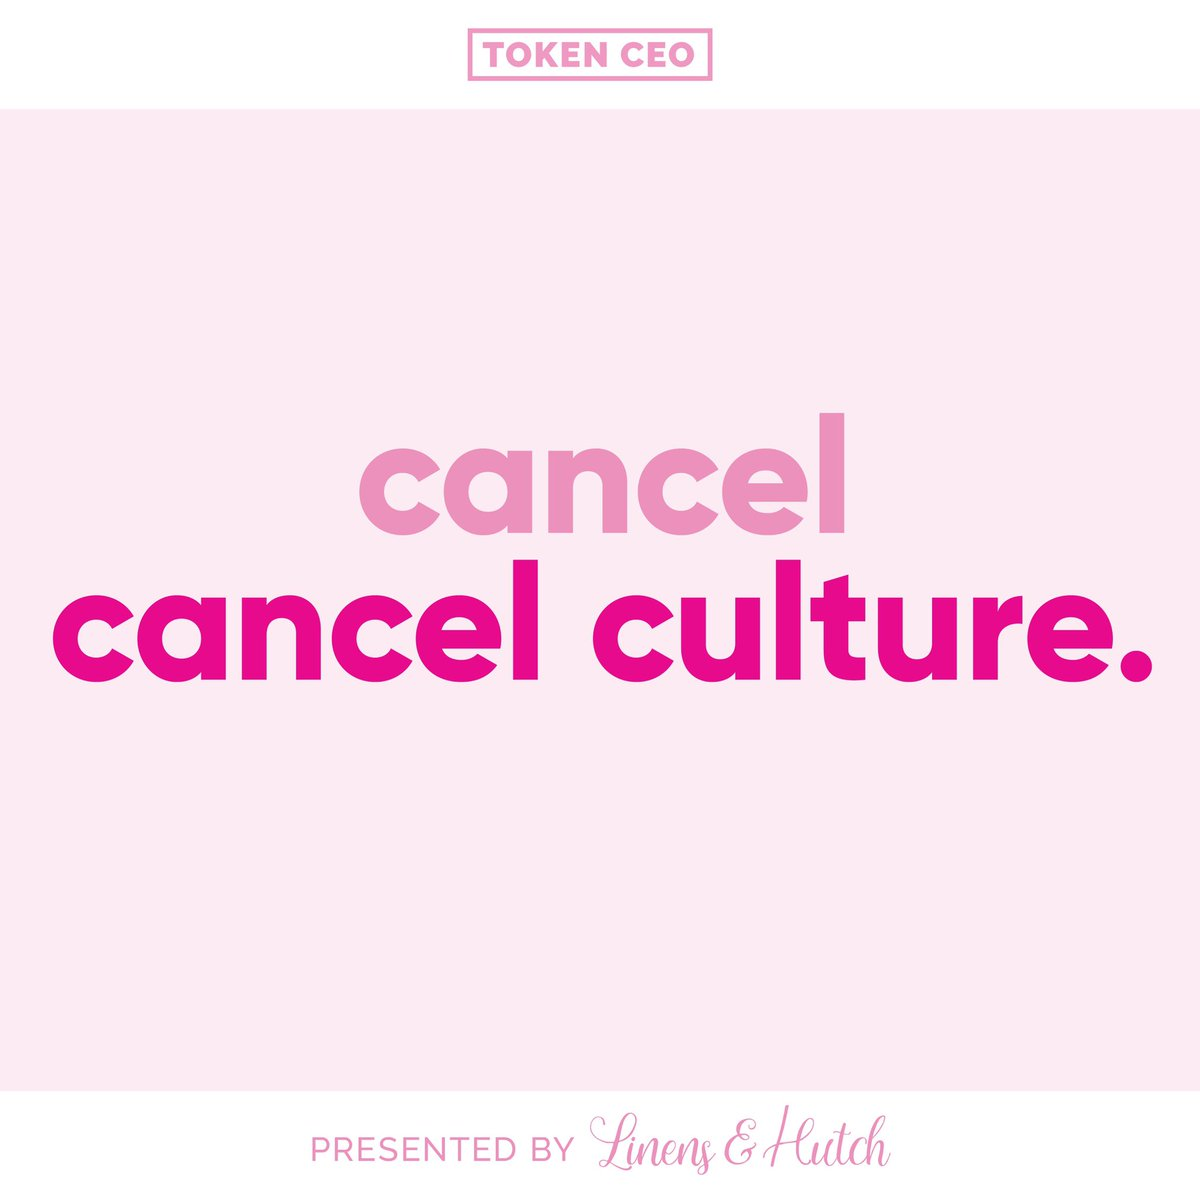 Today's episode is uncancellable.   Erika is joined by @SteveKrak to discuss cancel culture and its role in entertainment and news.  Listen here: https://t.co/DSQUF8S0dN  Presented by @linensandhutch https://t.co/ZMkdaQM1WM